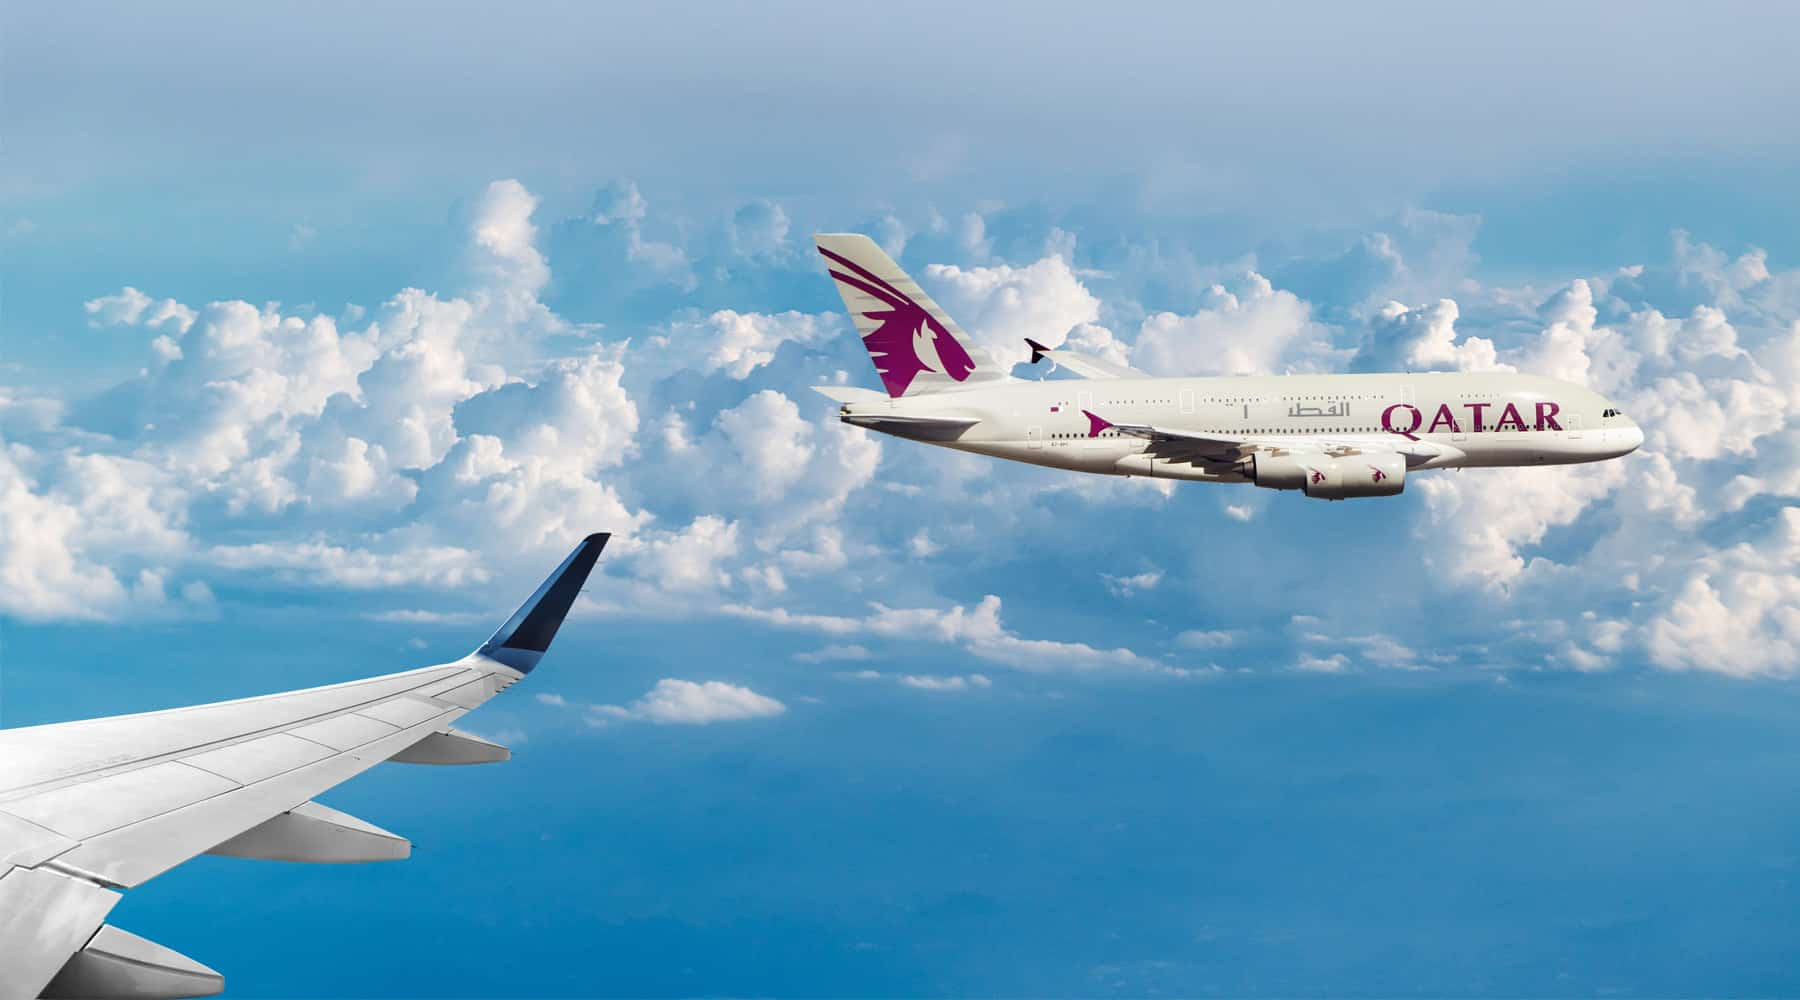 What Are The Best Airlines in the World?